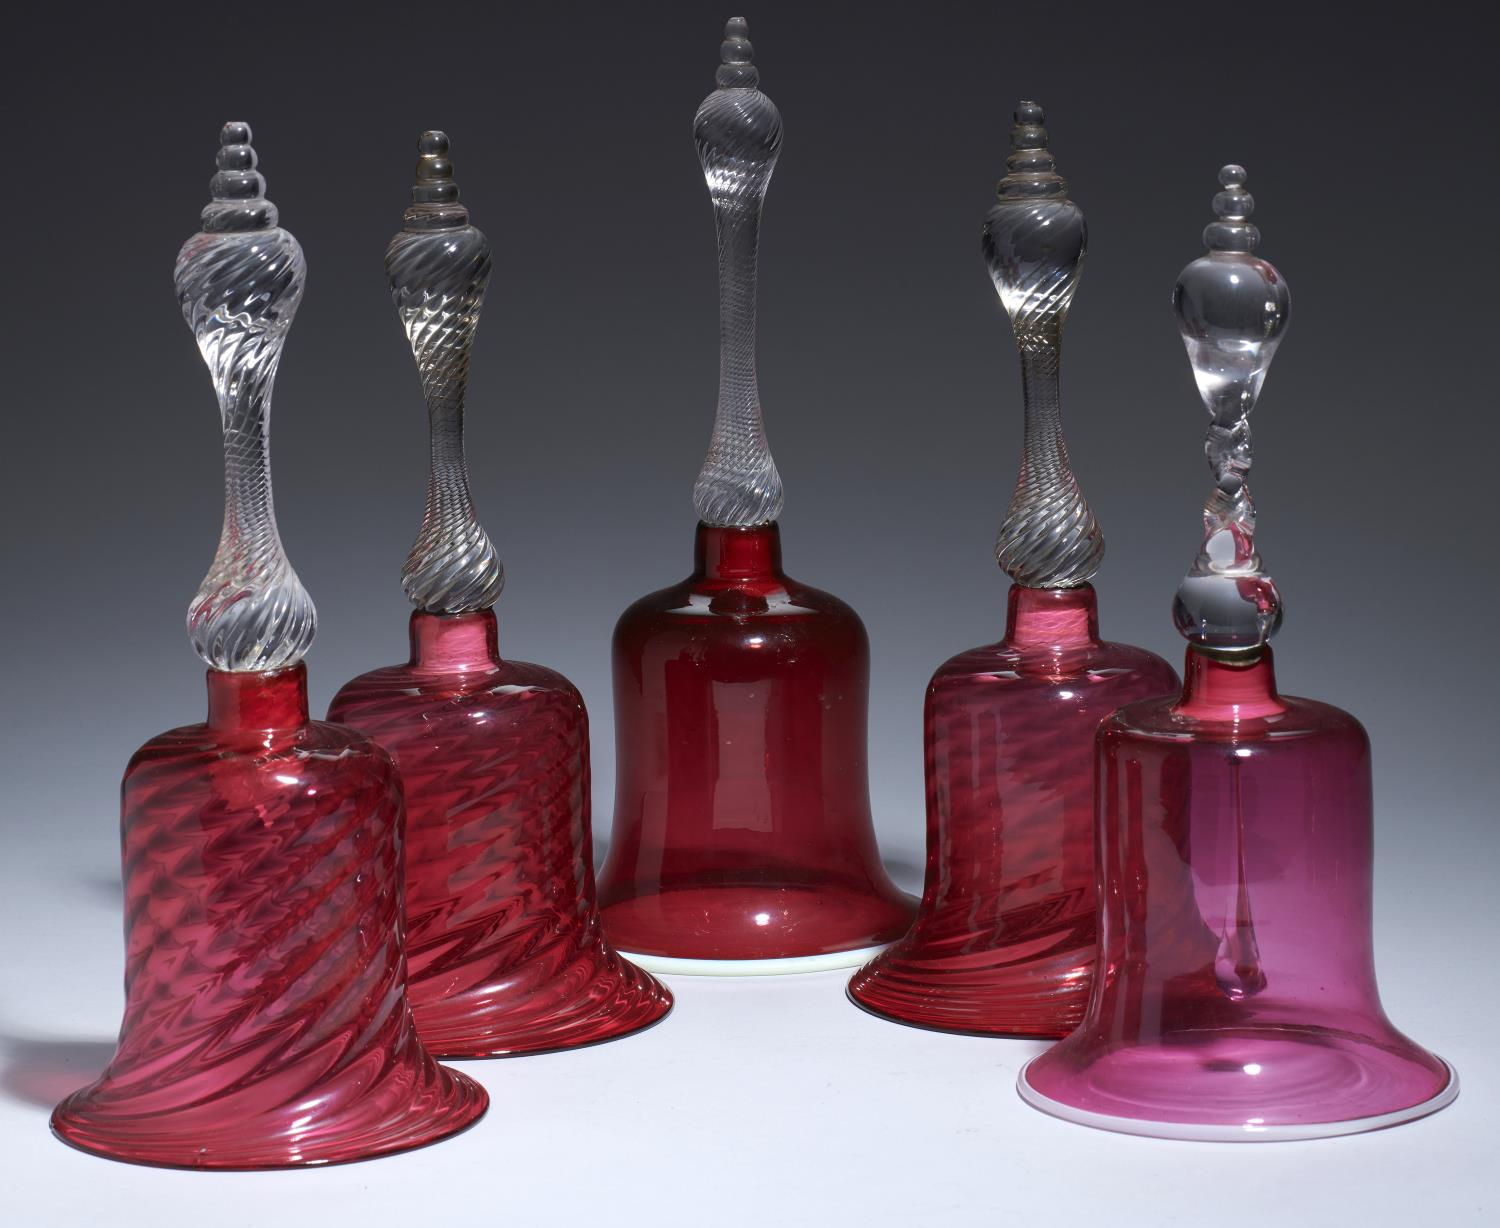 Lot 387 - FIVE VICTORIAN CRANBERRY GLASS BELLS, MID 19TH C with clear spiral handle, 30-34cm h, all but one